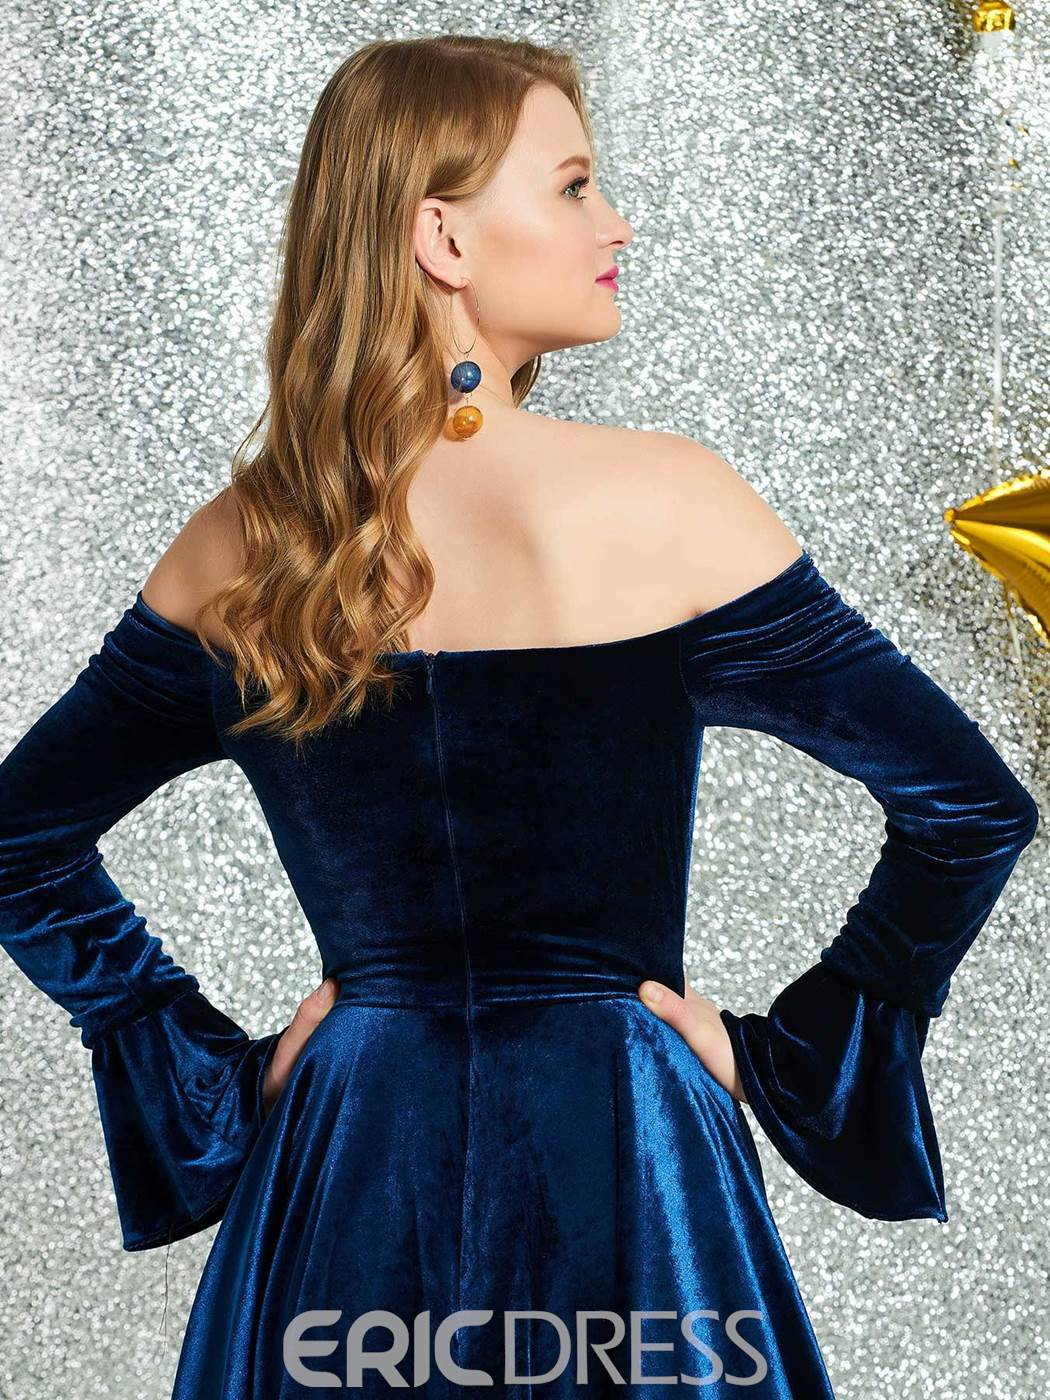 Ericdress Off-The-Shoulder Long Sleeves Cocktail Dress 2019